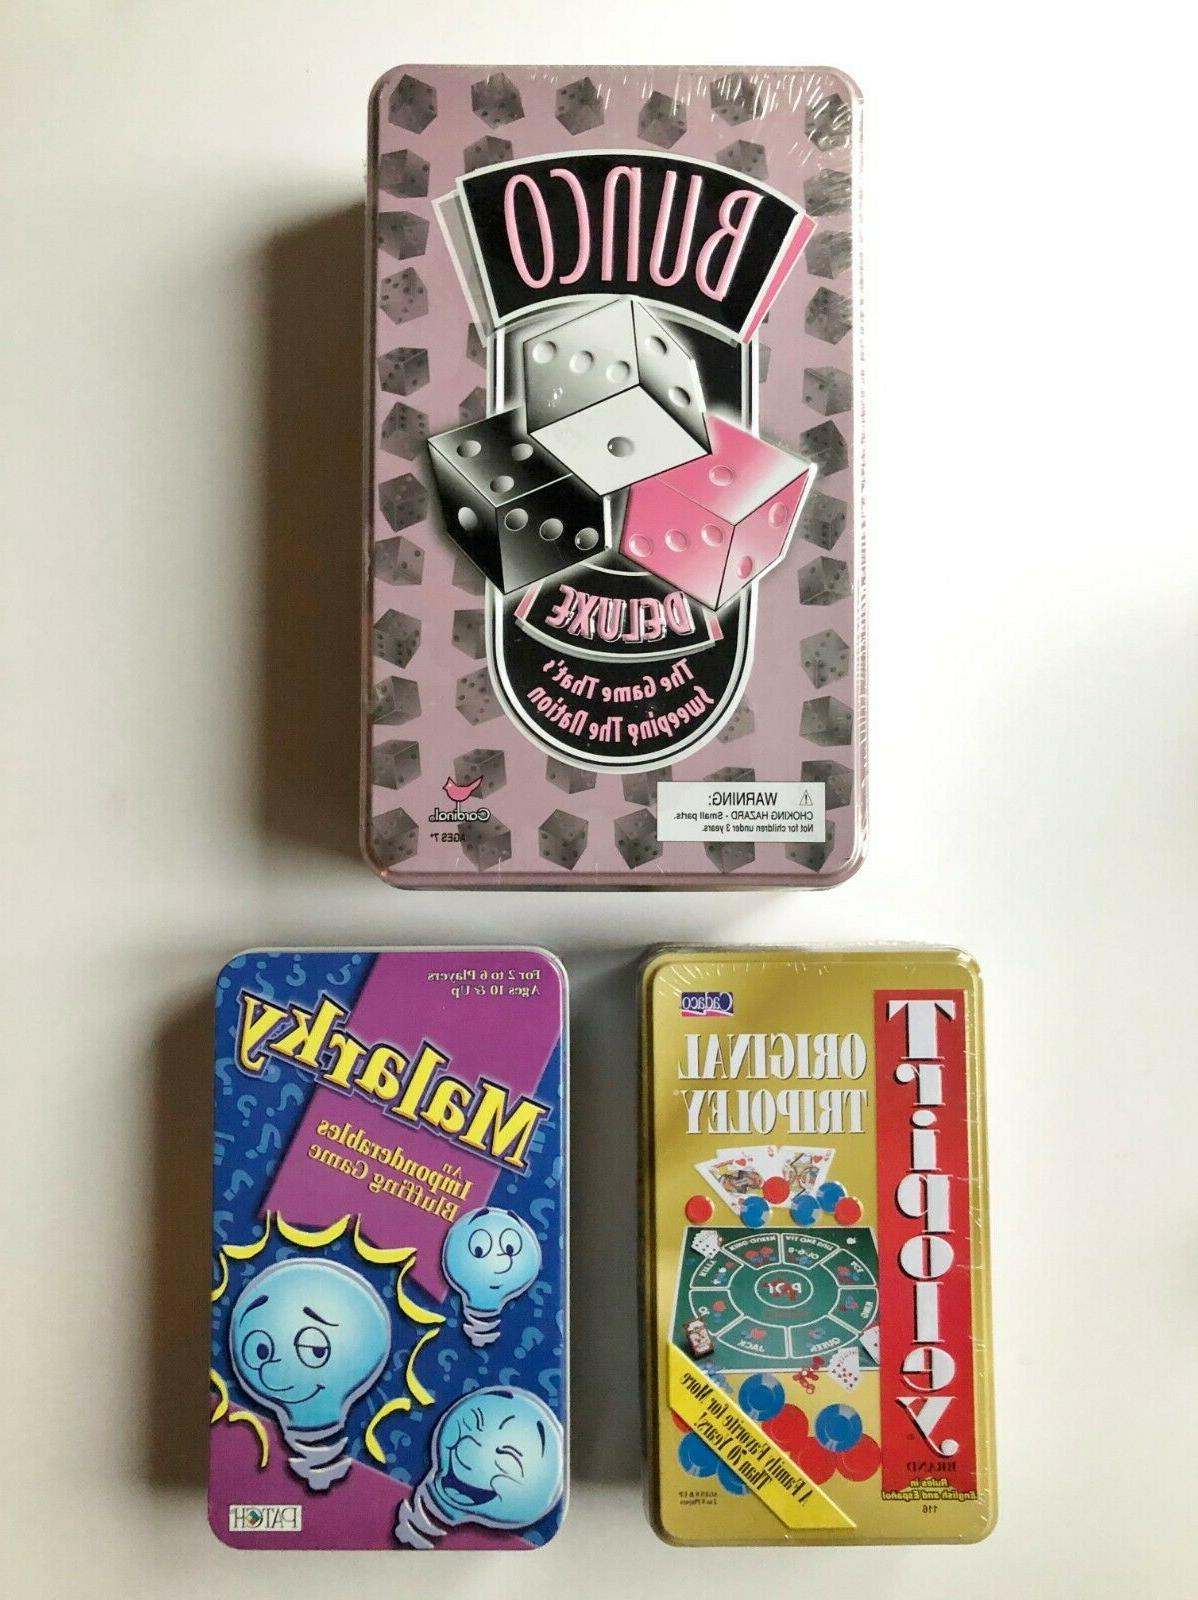 3 great games bunco deluxe tripoly